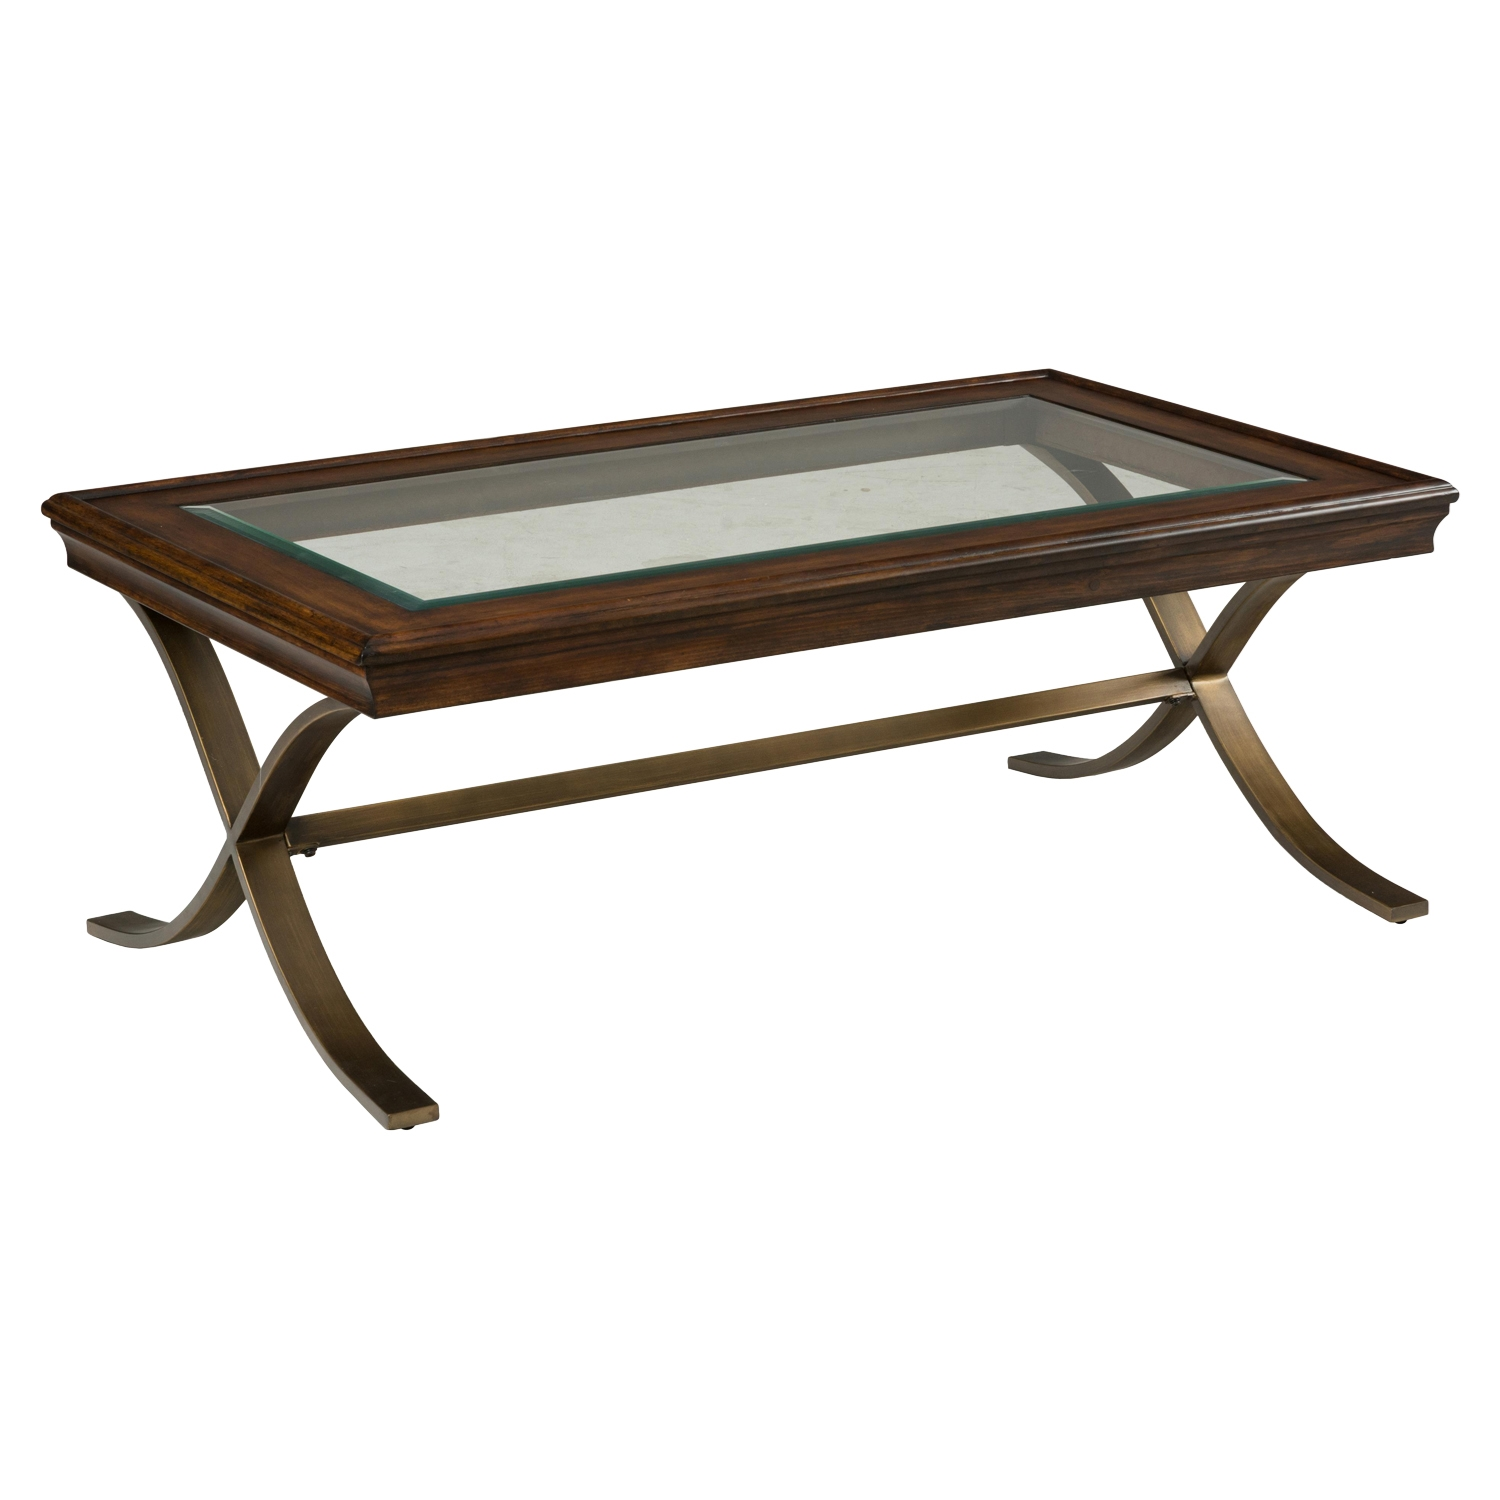 Ashland Rectangular Cocktail Table - Rich Chocolate - JOFR-834-1